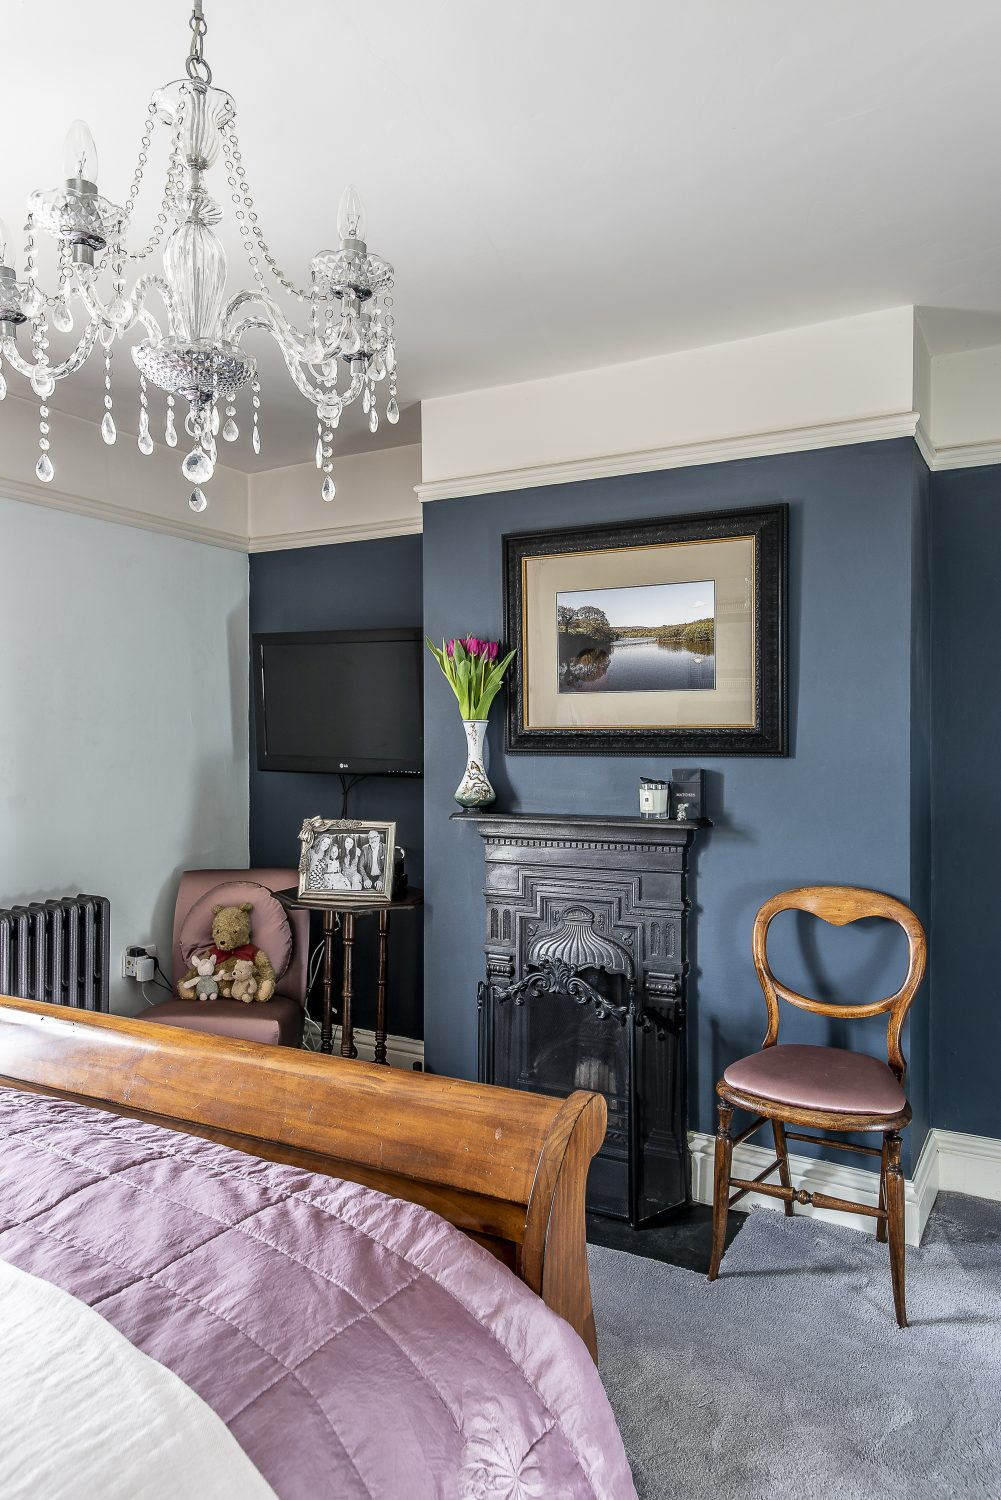 In the restful master bedroom an inky-blue wall and period fireplace have replaced built-in wardrobes